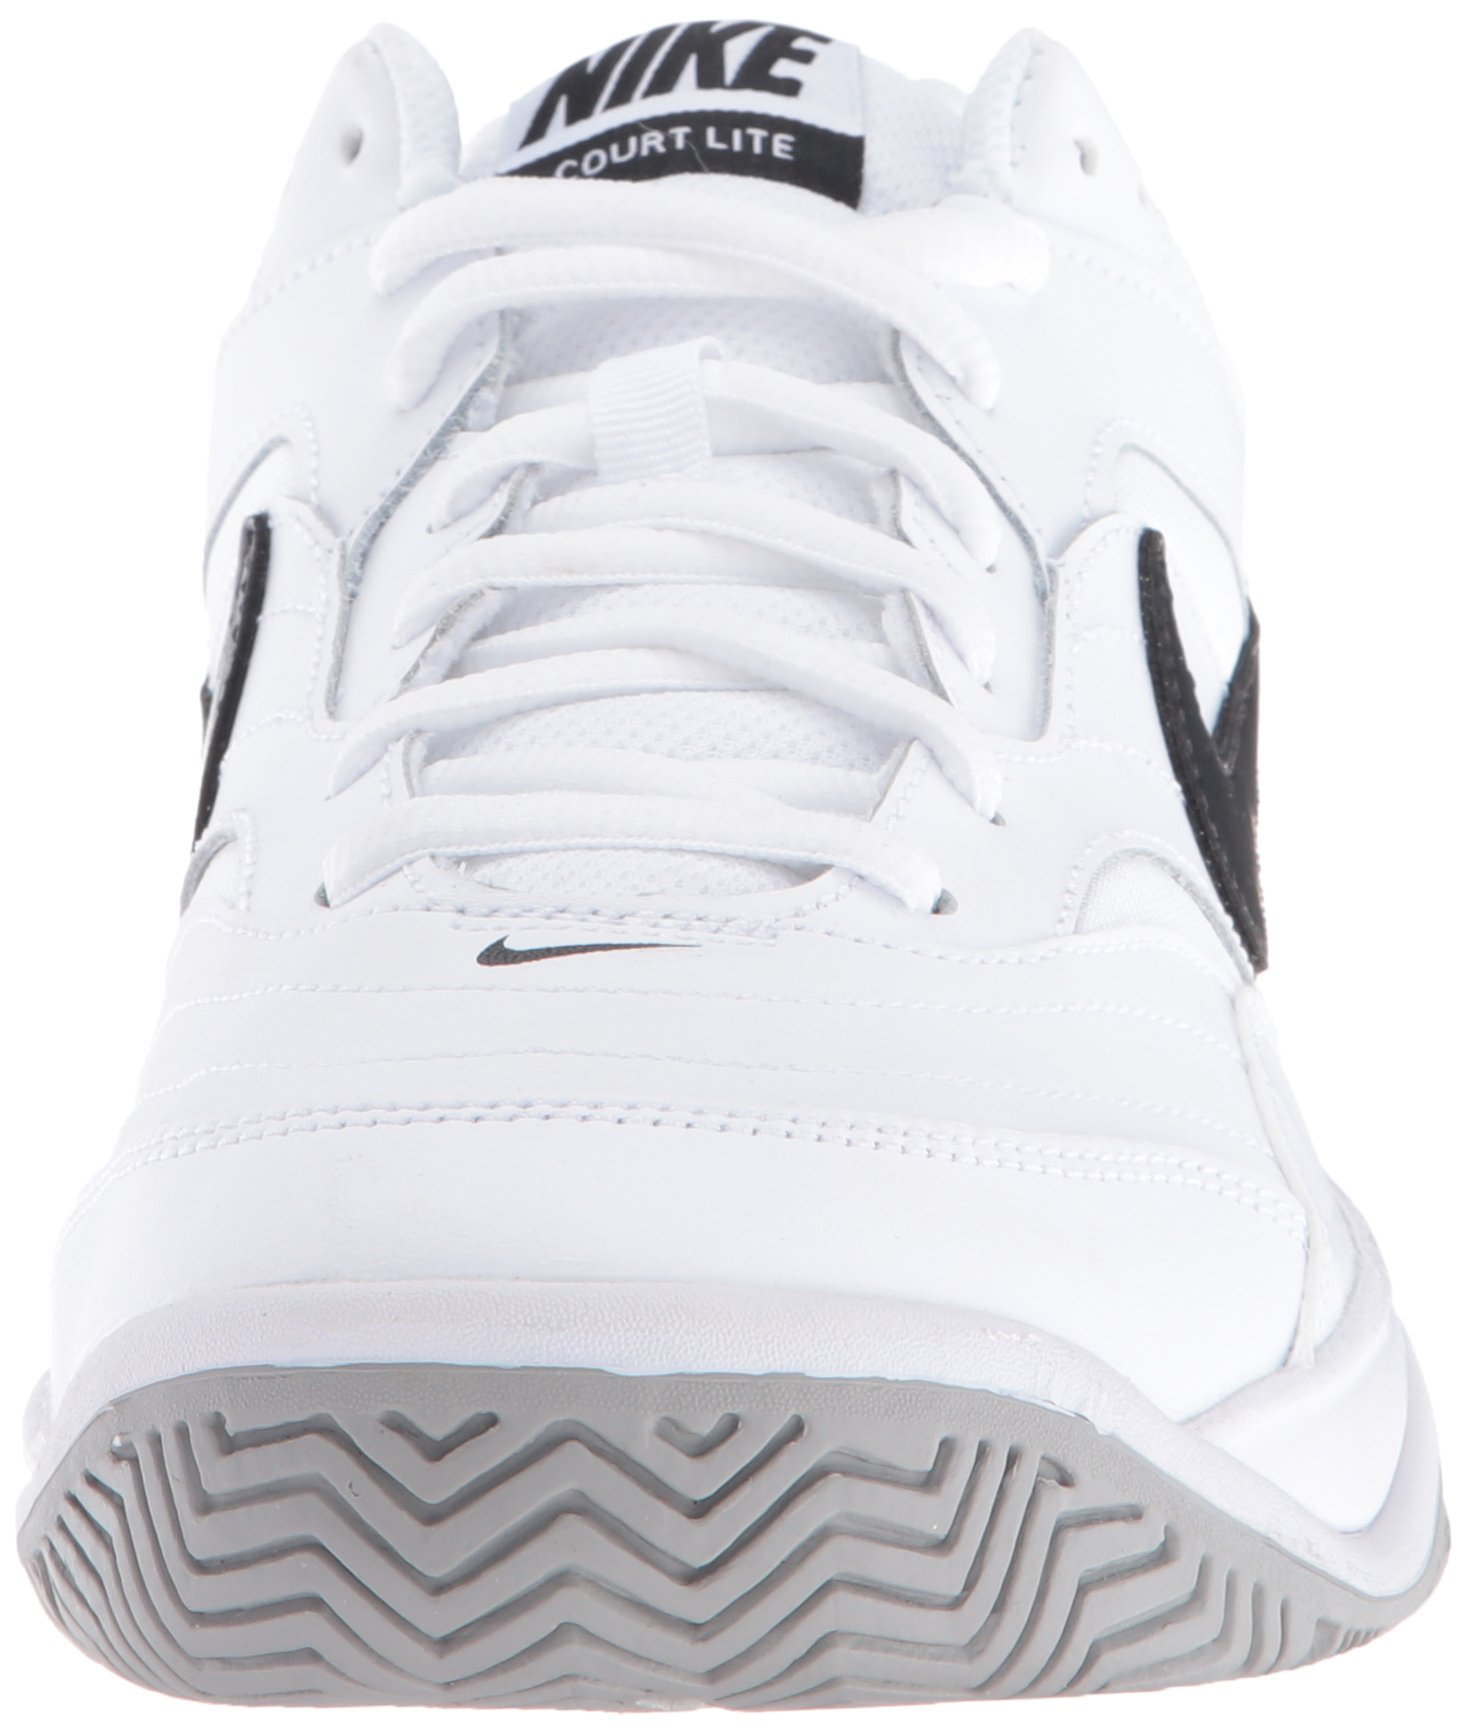 NIKE Men's Court Lite Tennis Shoe, White/Medium Grey/Black, 6.5 D(M) US by Nike (Image #4)